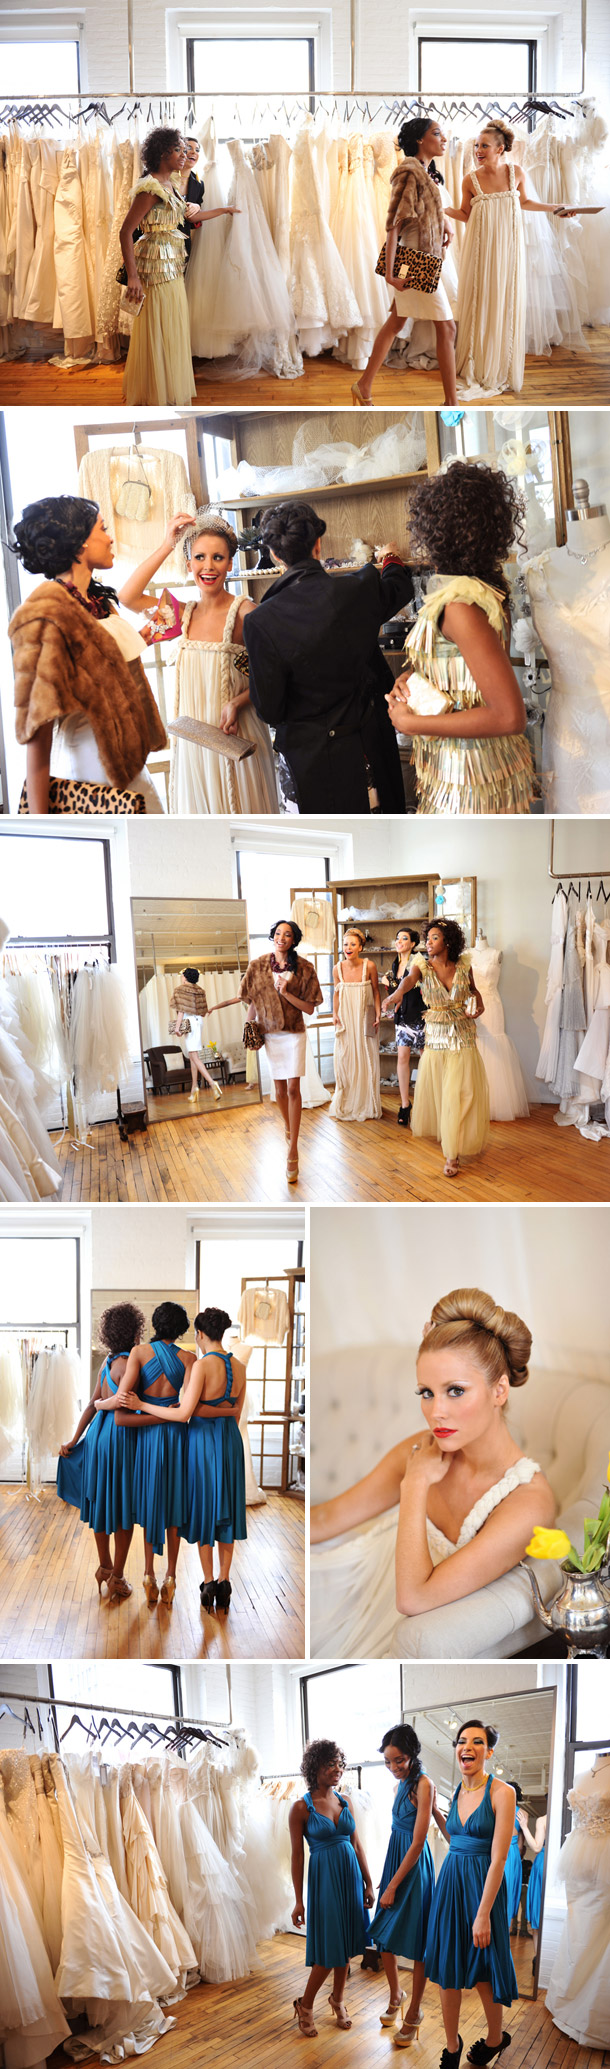 Brautkleid Shopping in New York von Andrea & Marcus